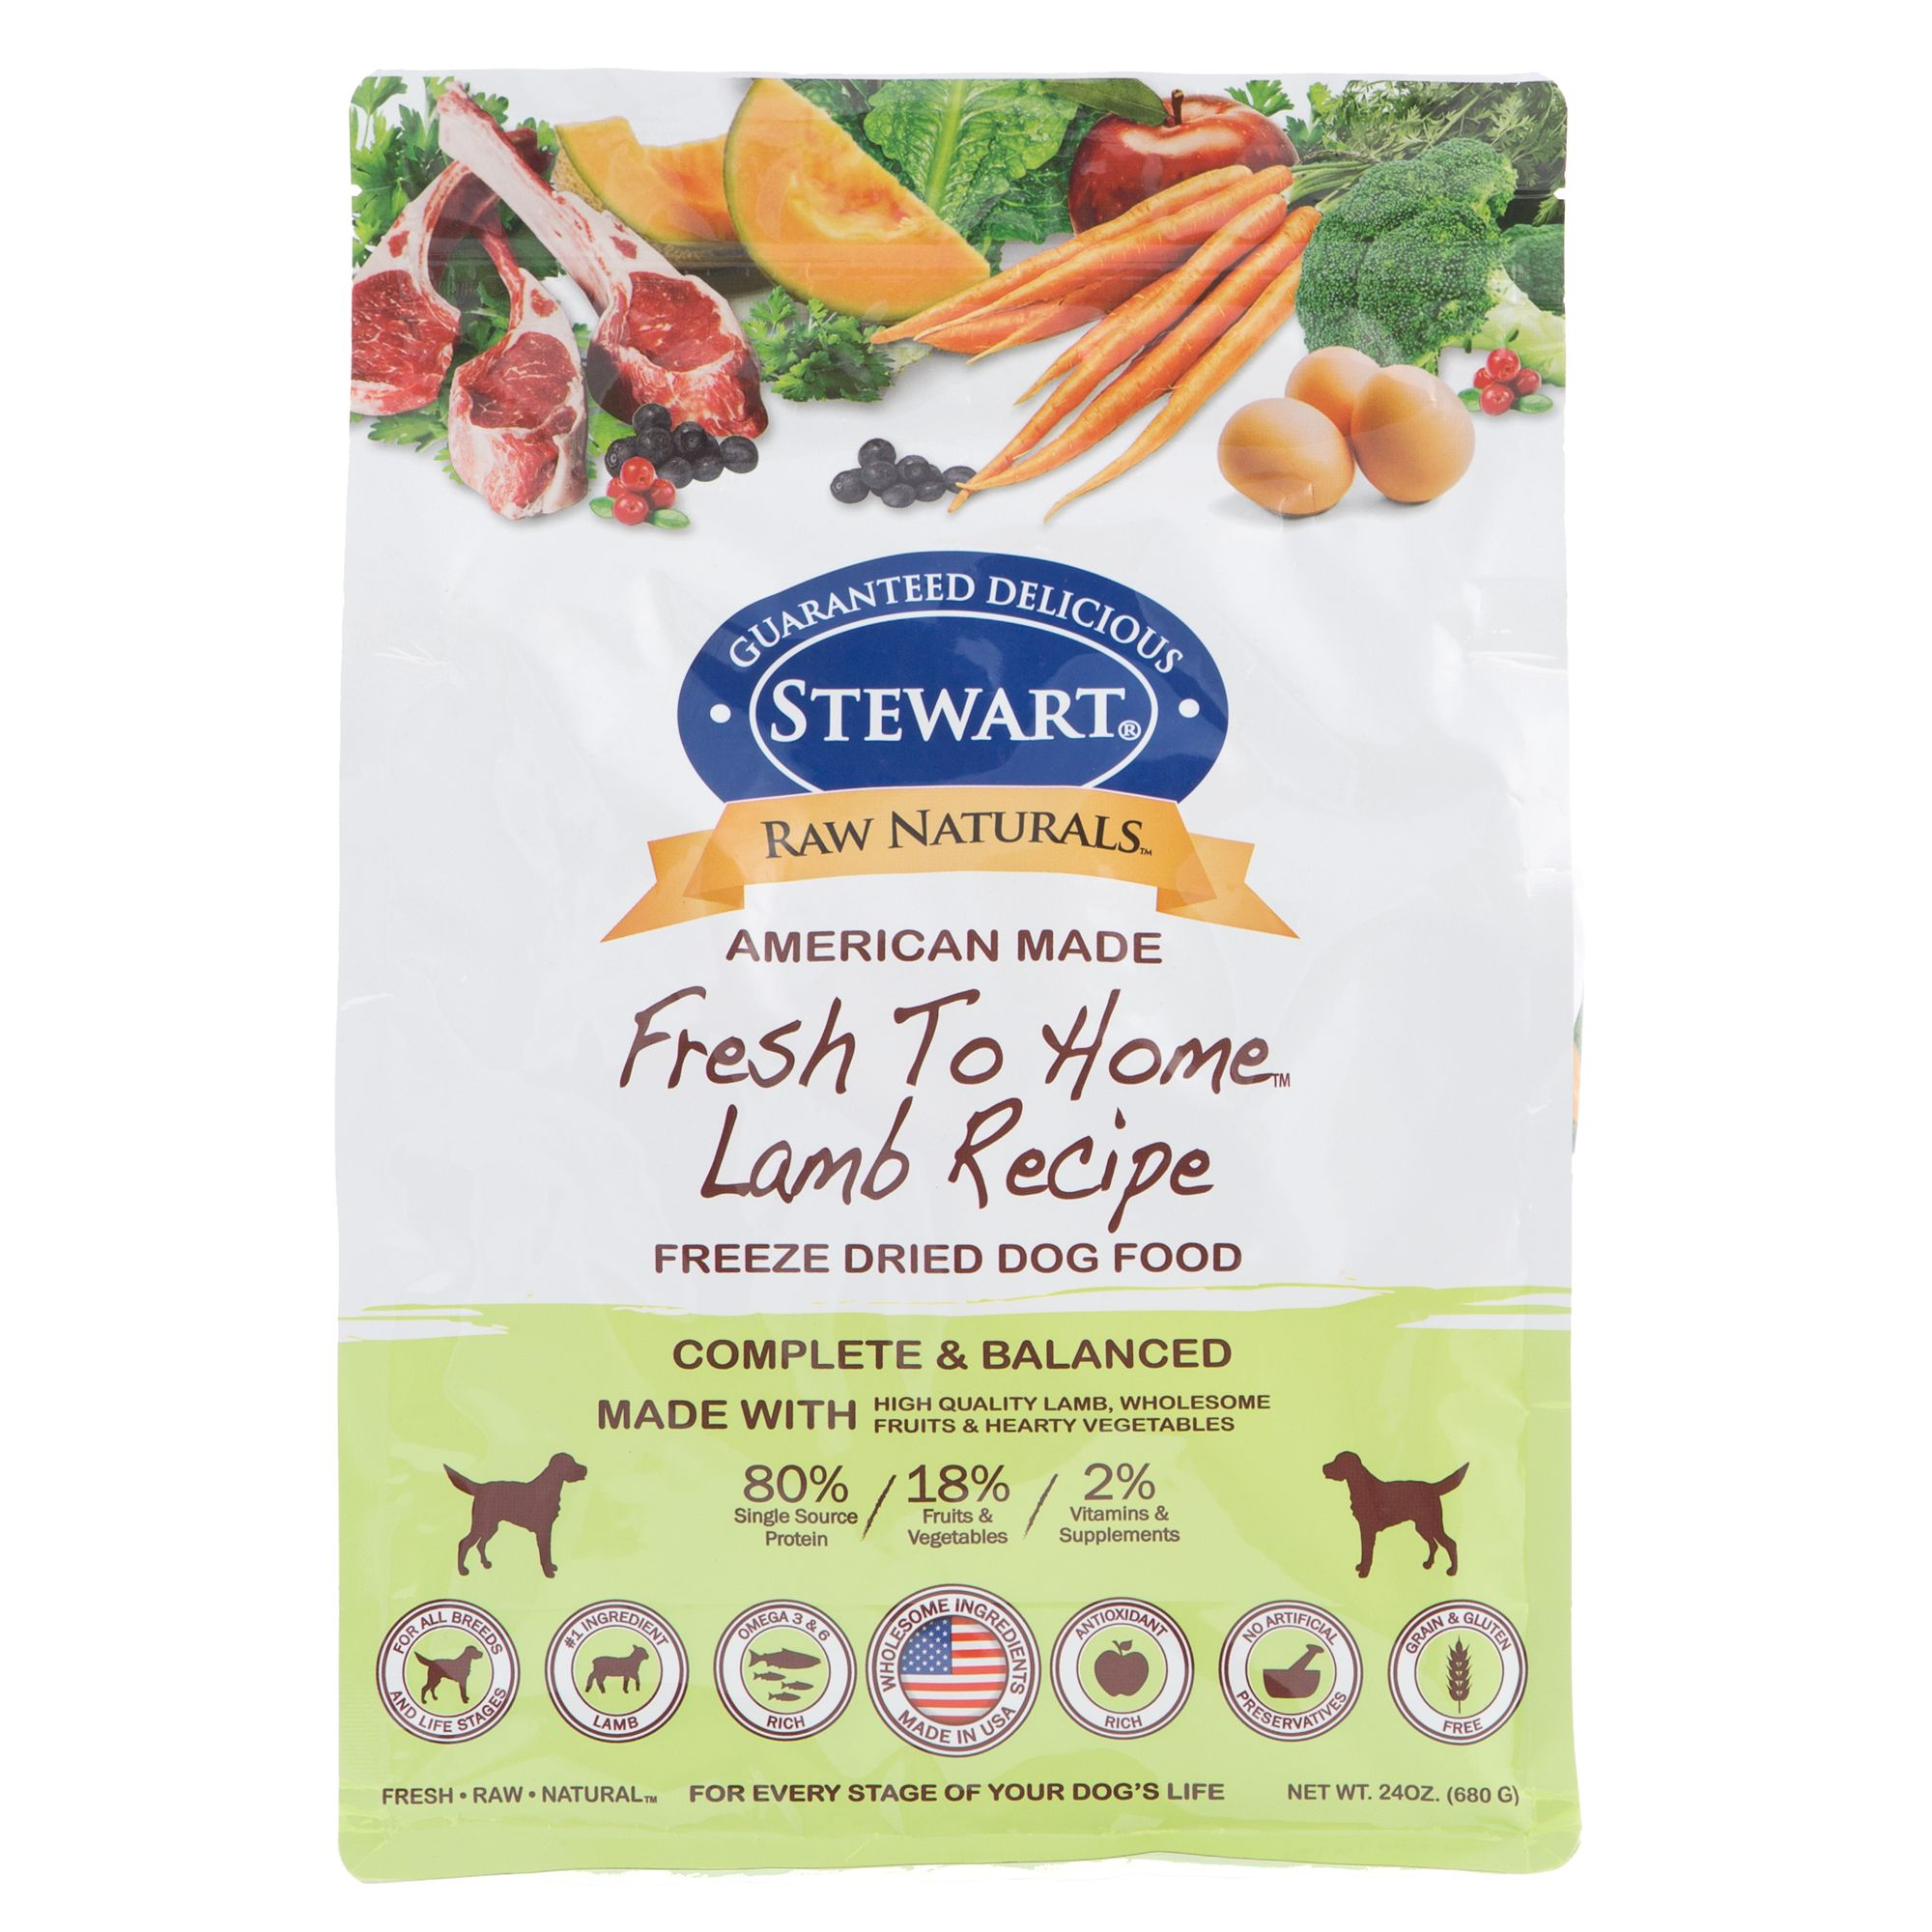 Stewart Raw Naturals Dog Food Freeze Dried Lamb Size 24 Oz